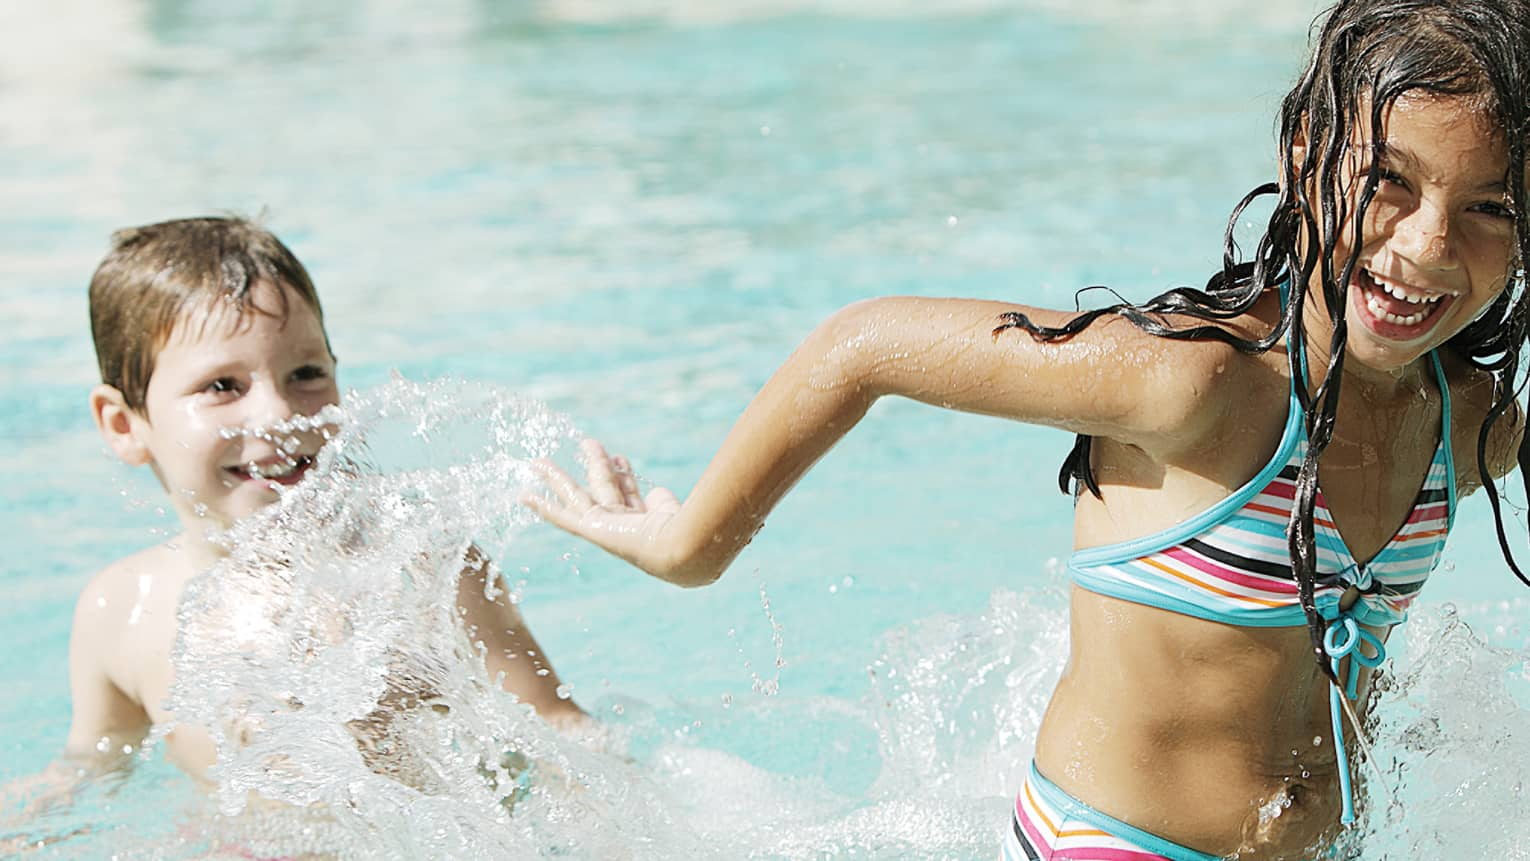 Laughing girl in swimsuit plays in swimming pool, splashes smiling boy